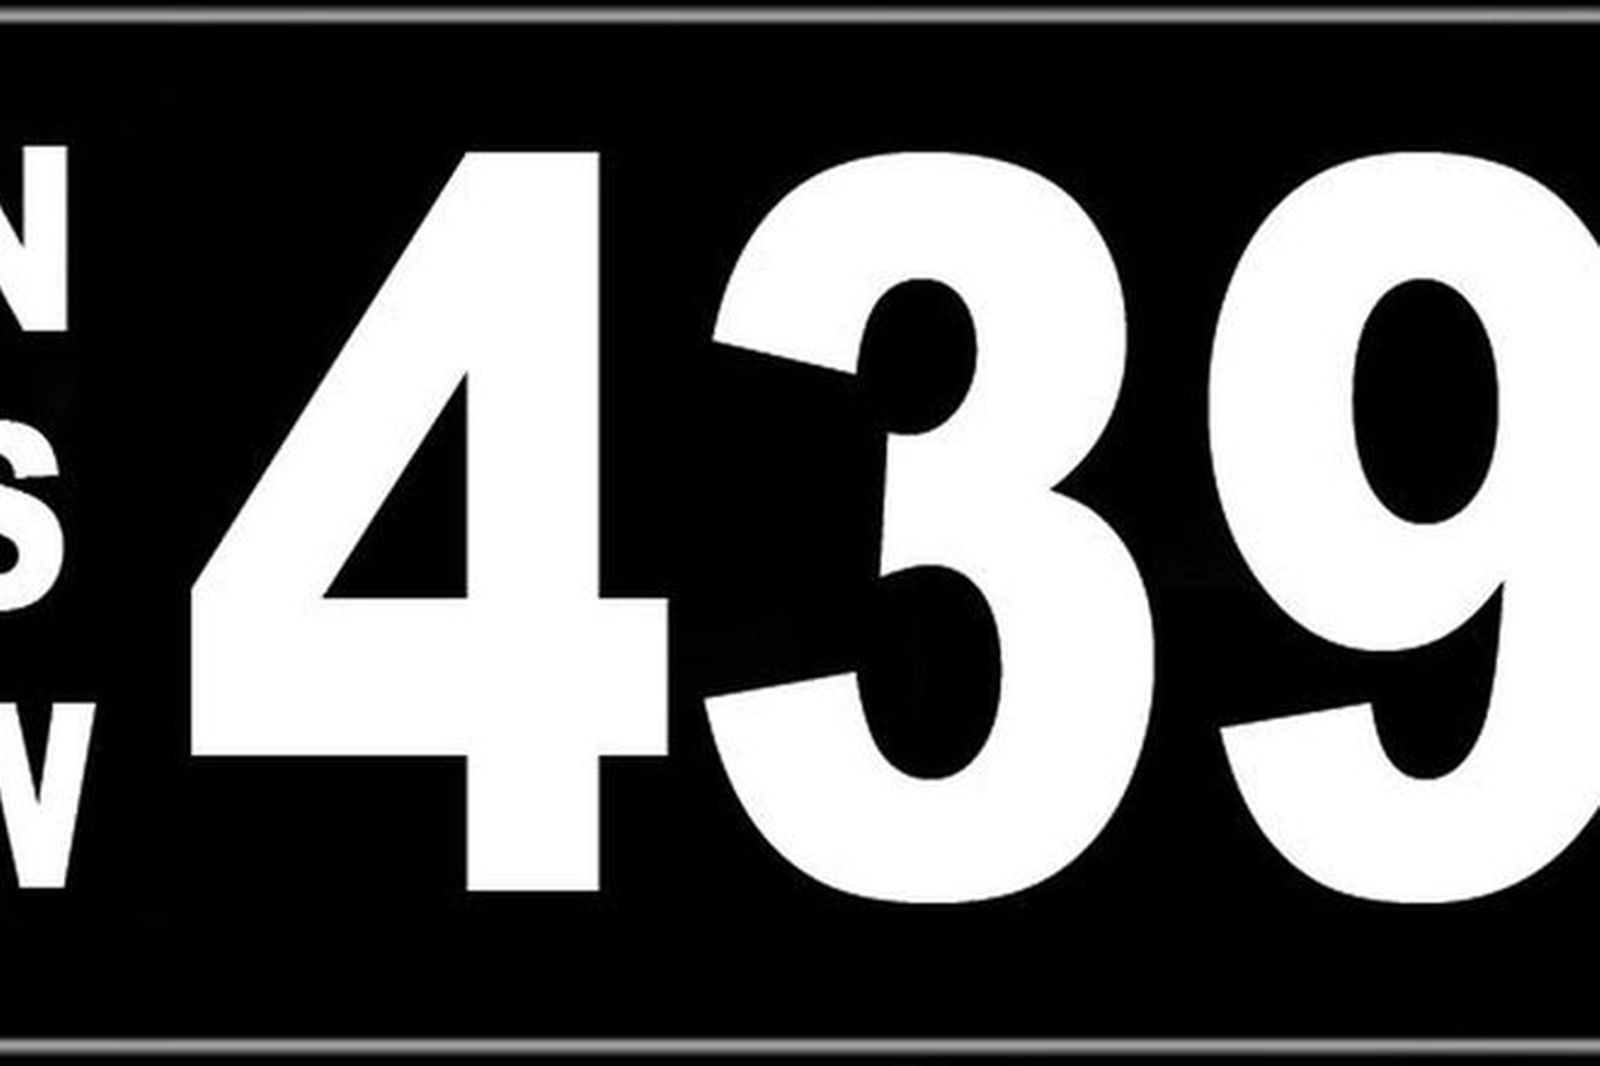 Number Plates - NSW Numerical Number Plates '439'